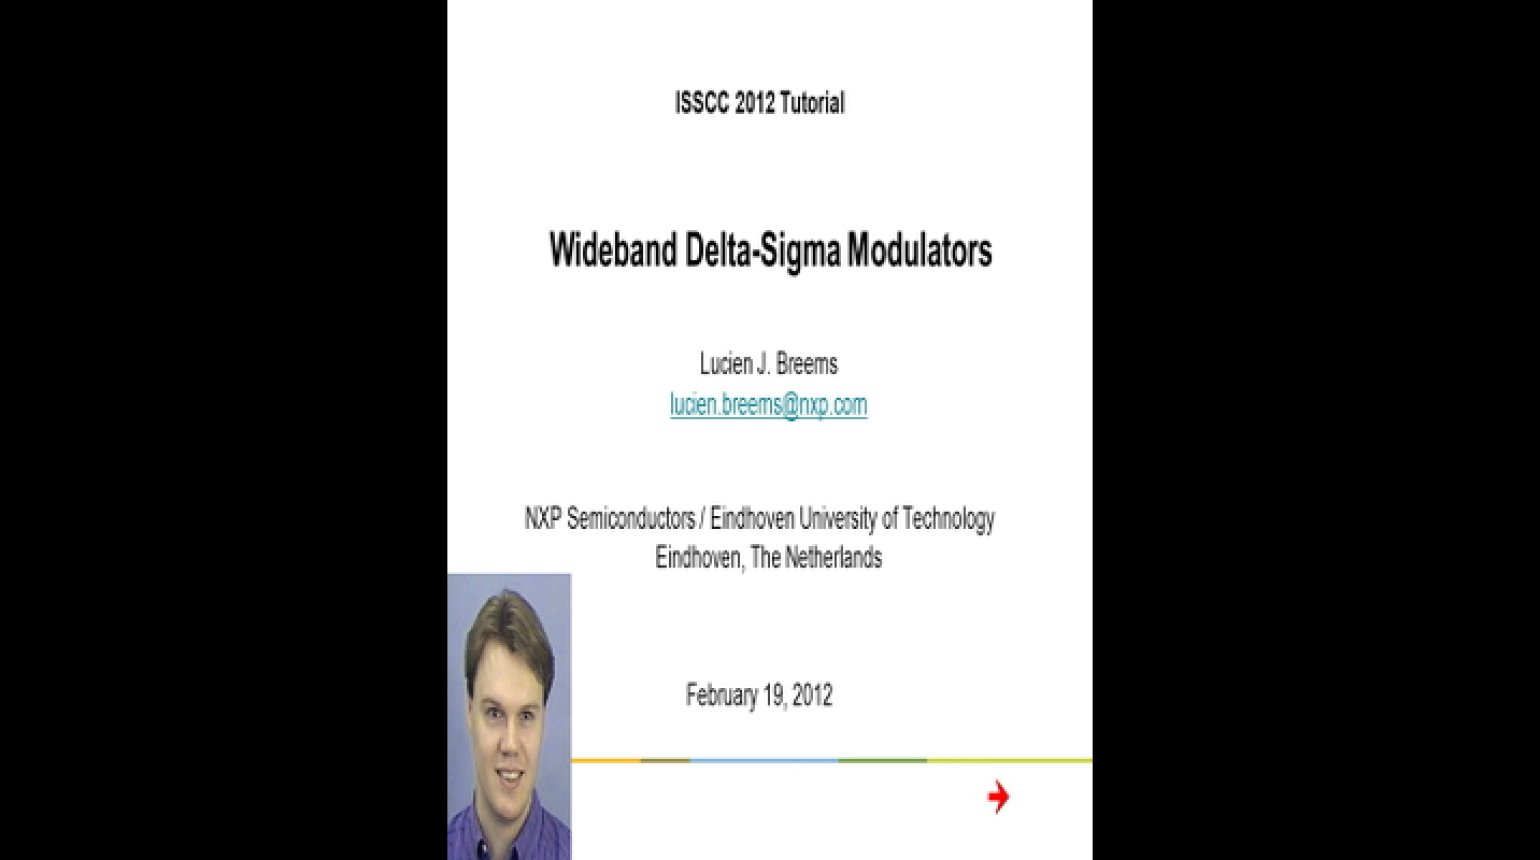 WideBand Delta Sigma Modulators Video